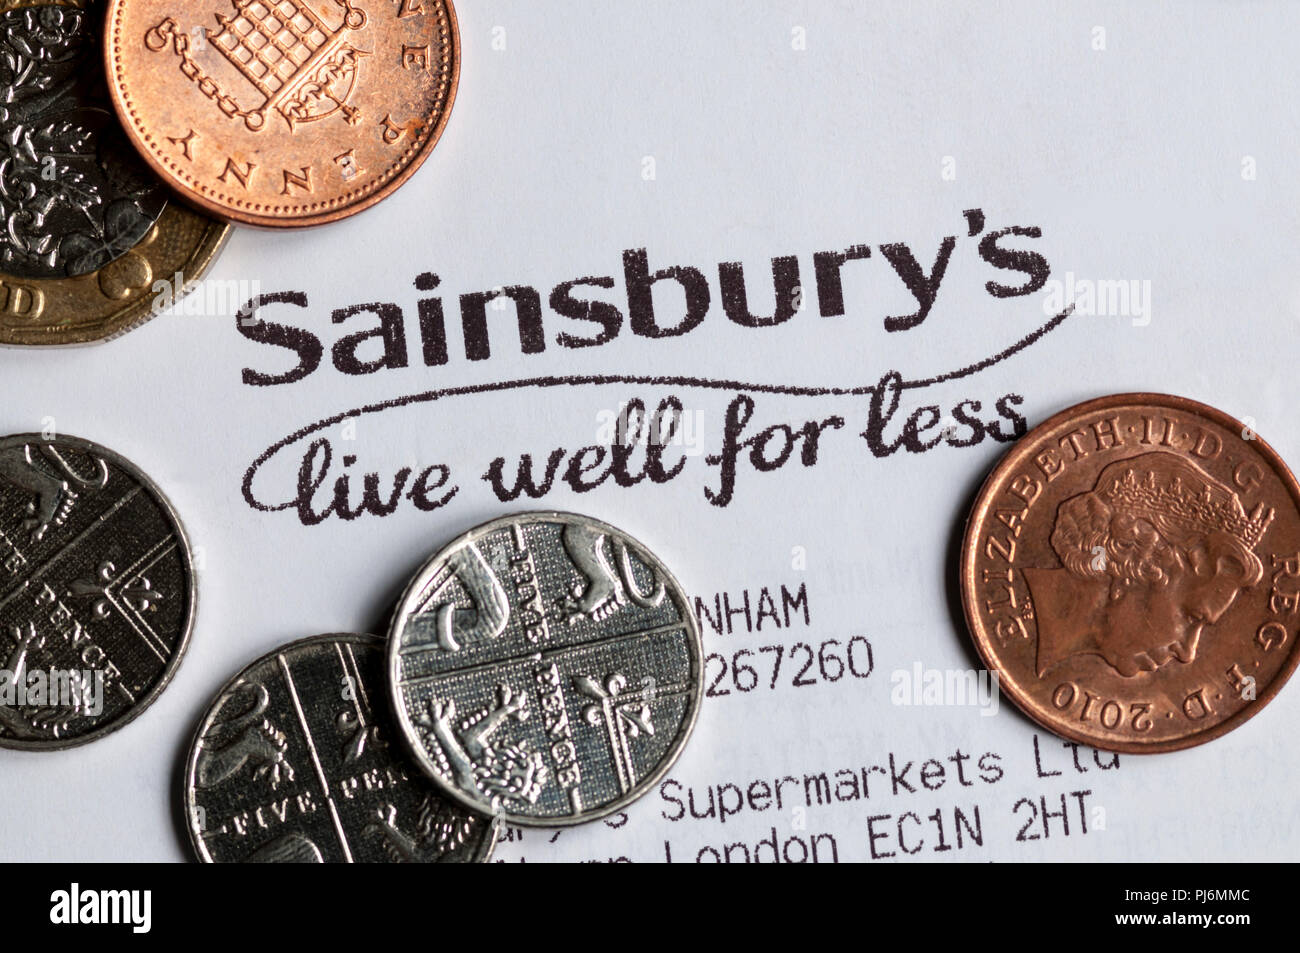 Close-up of Sainsbury's live well for less slogan printed on a till receipt with coins - Stock Image